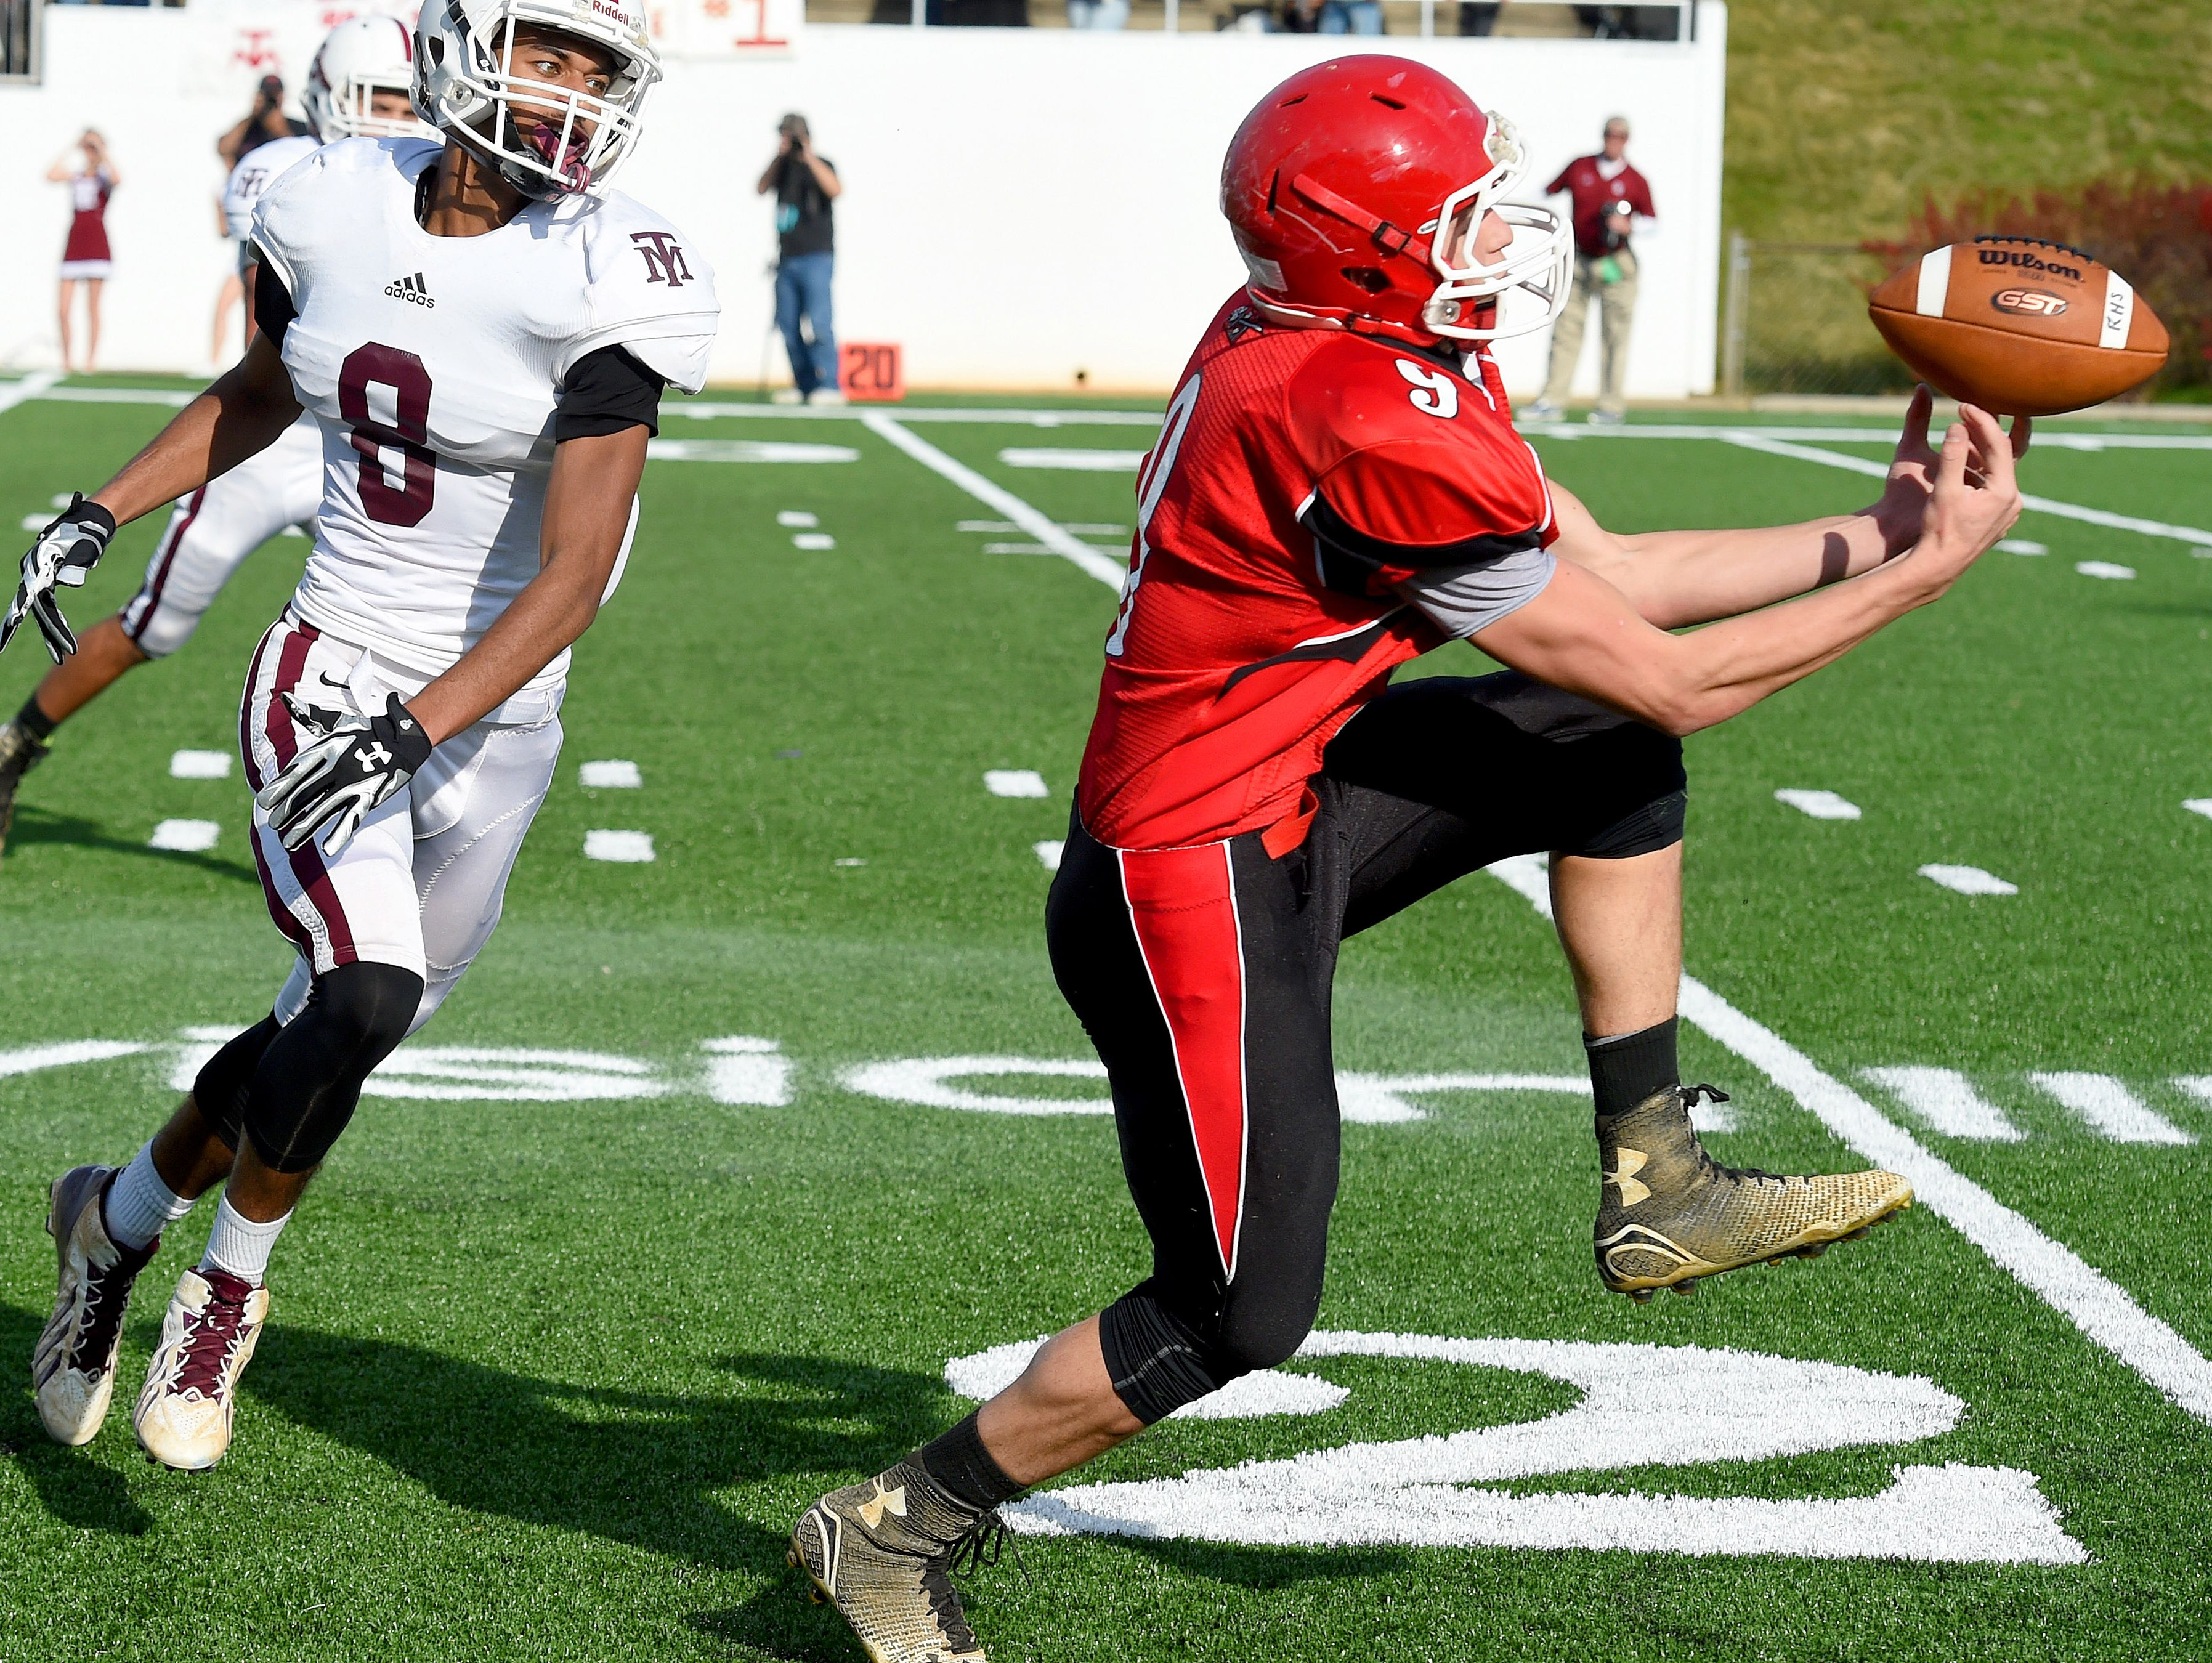 Riverheads' Tyler Smith works his fingers to come away with a 43-yard pass completion and will run the ball down to the 4 yard line during the Group 1A football championship in Salem on Saturday, Dec. 12, 2015. Riverheads lost to Galax 7-6.